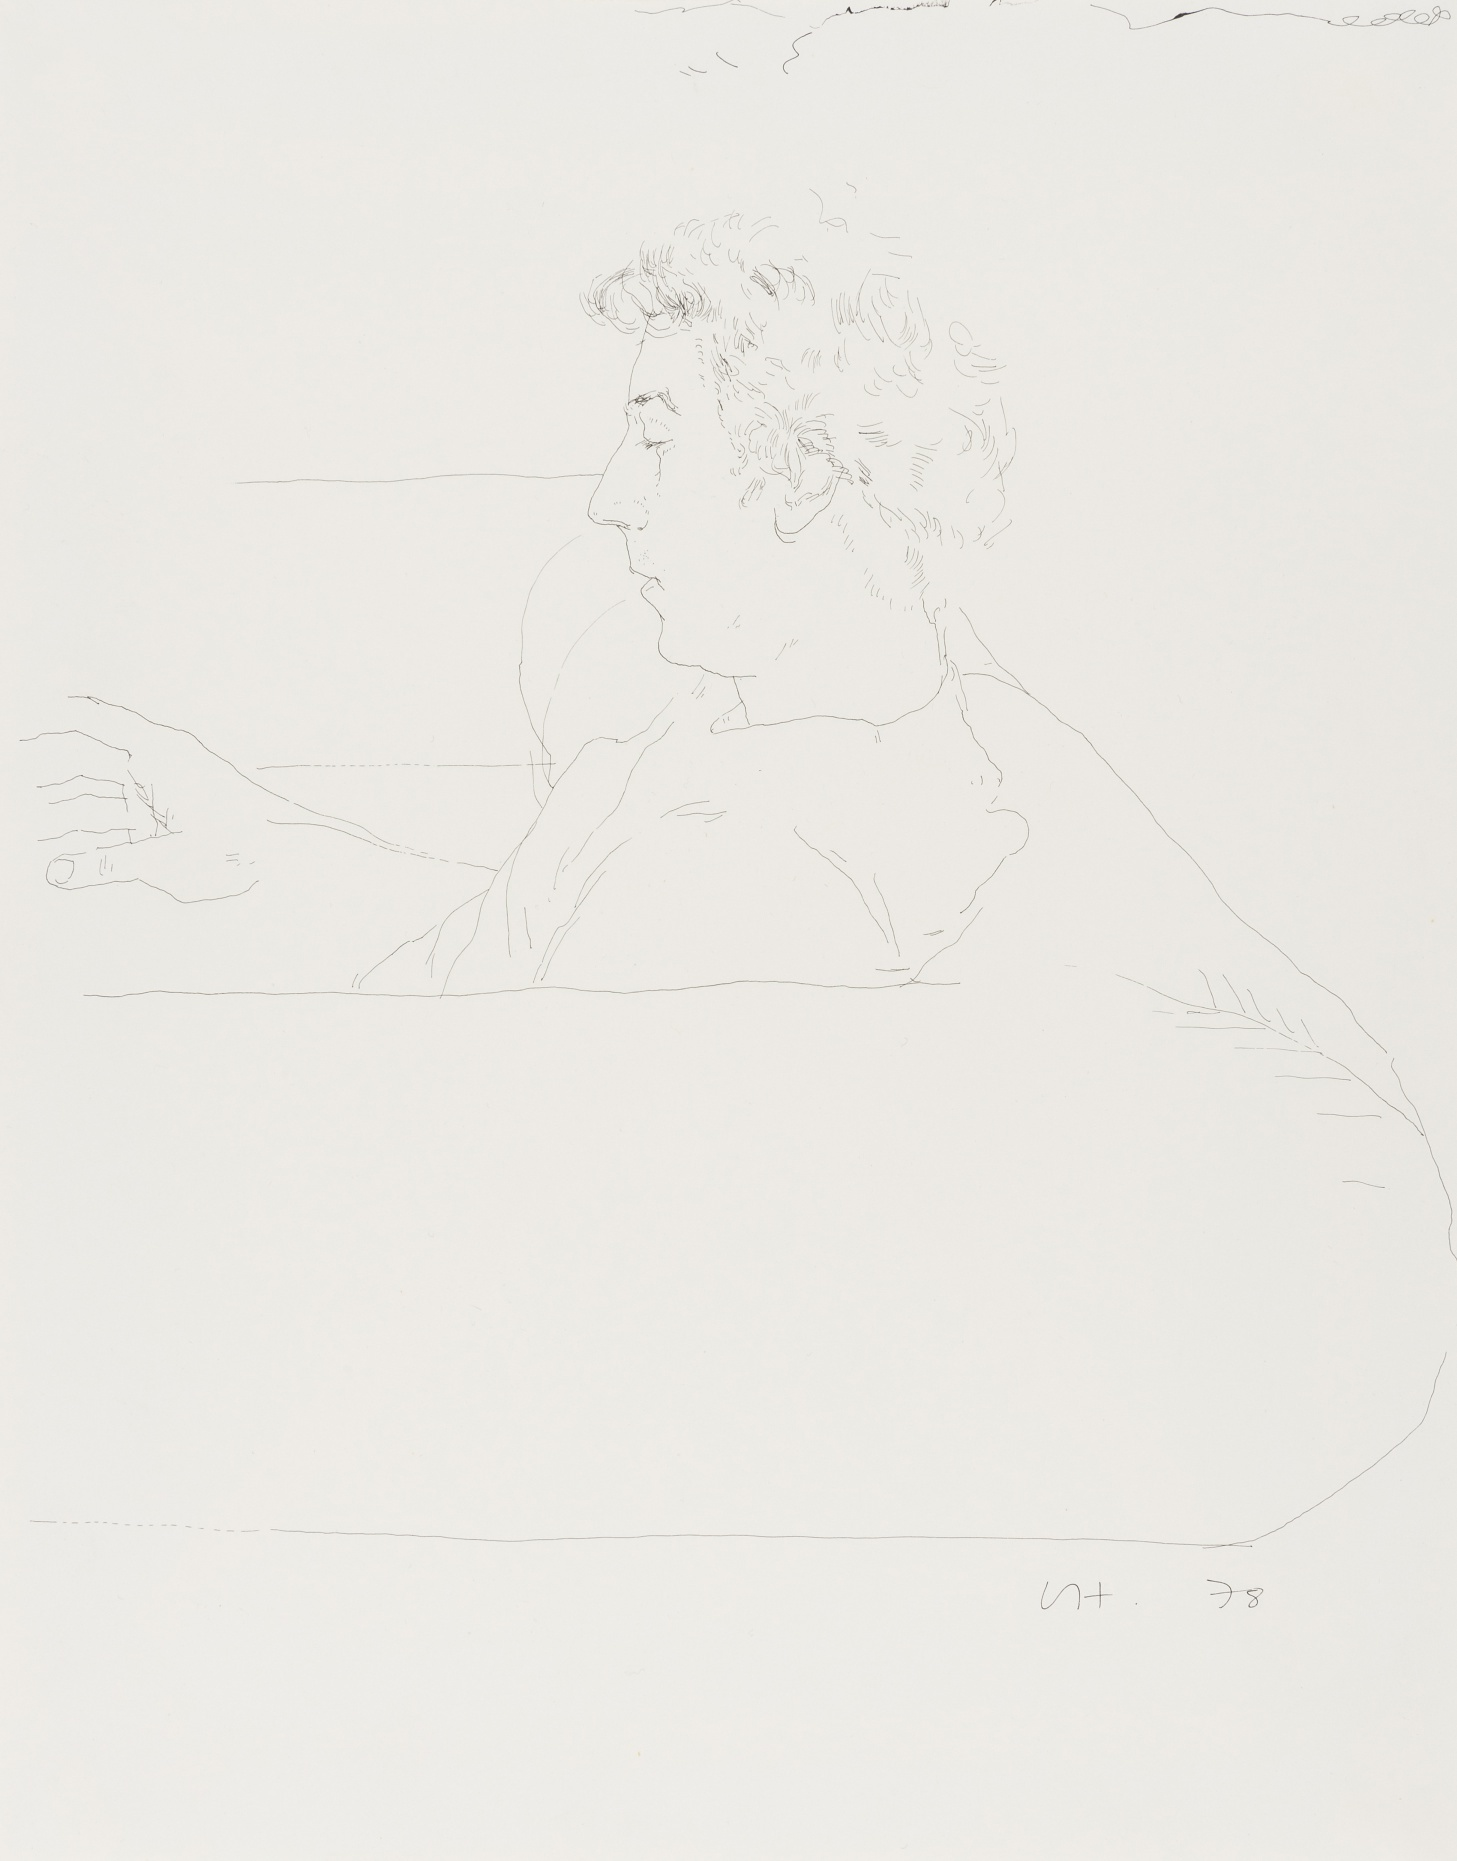 David Hockney, 'Gregory on a sofa', bläck på papper, 1978. Utrop: £25 000-35 000